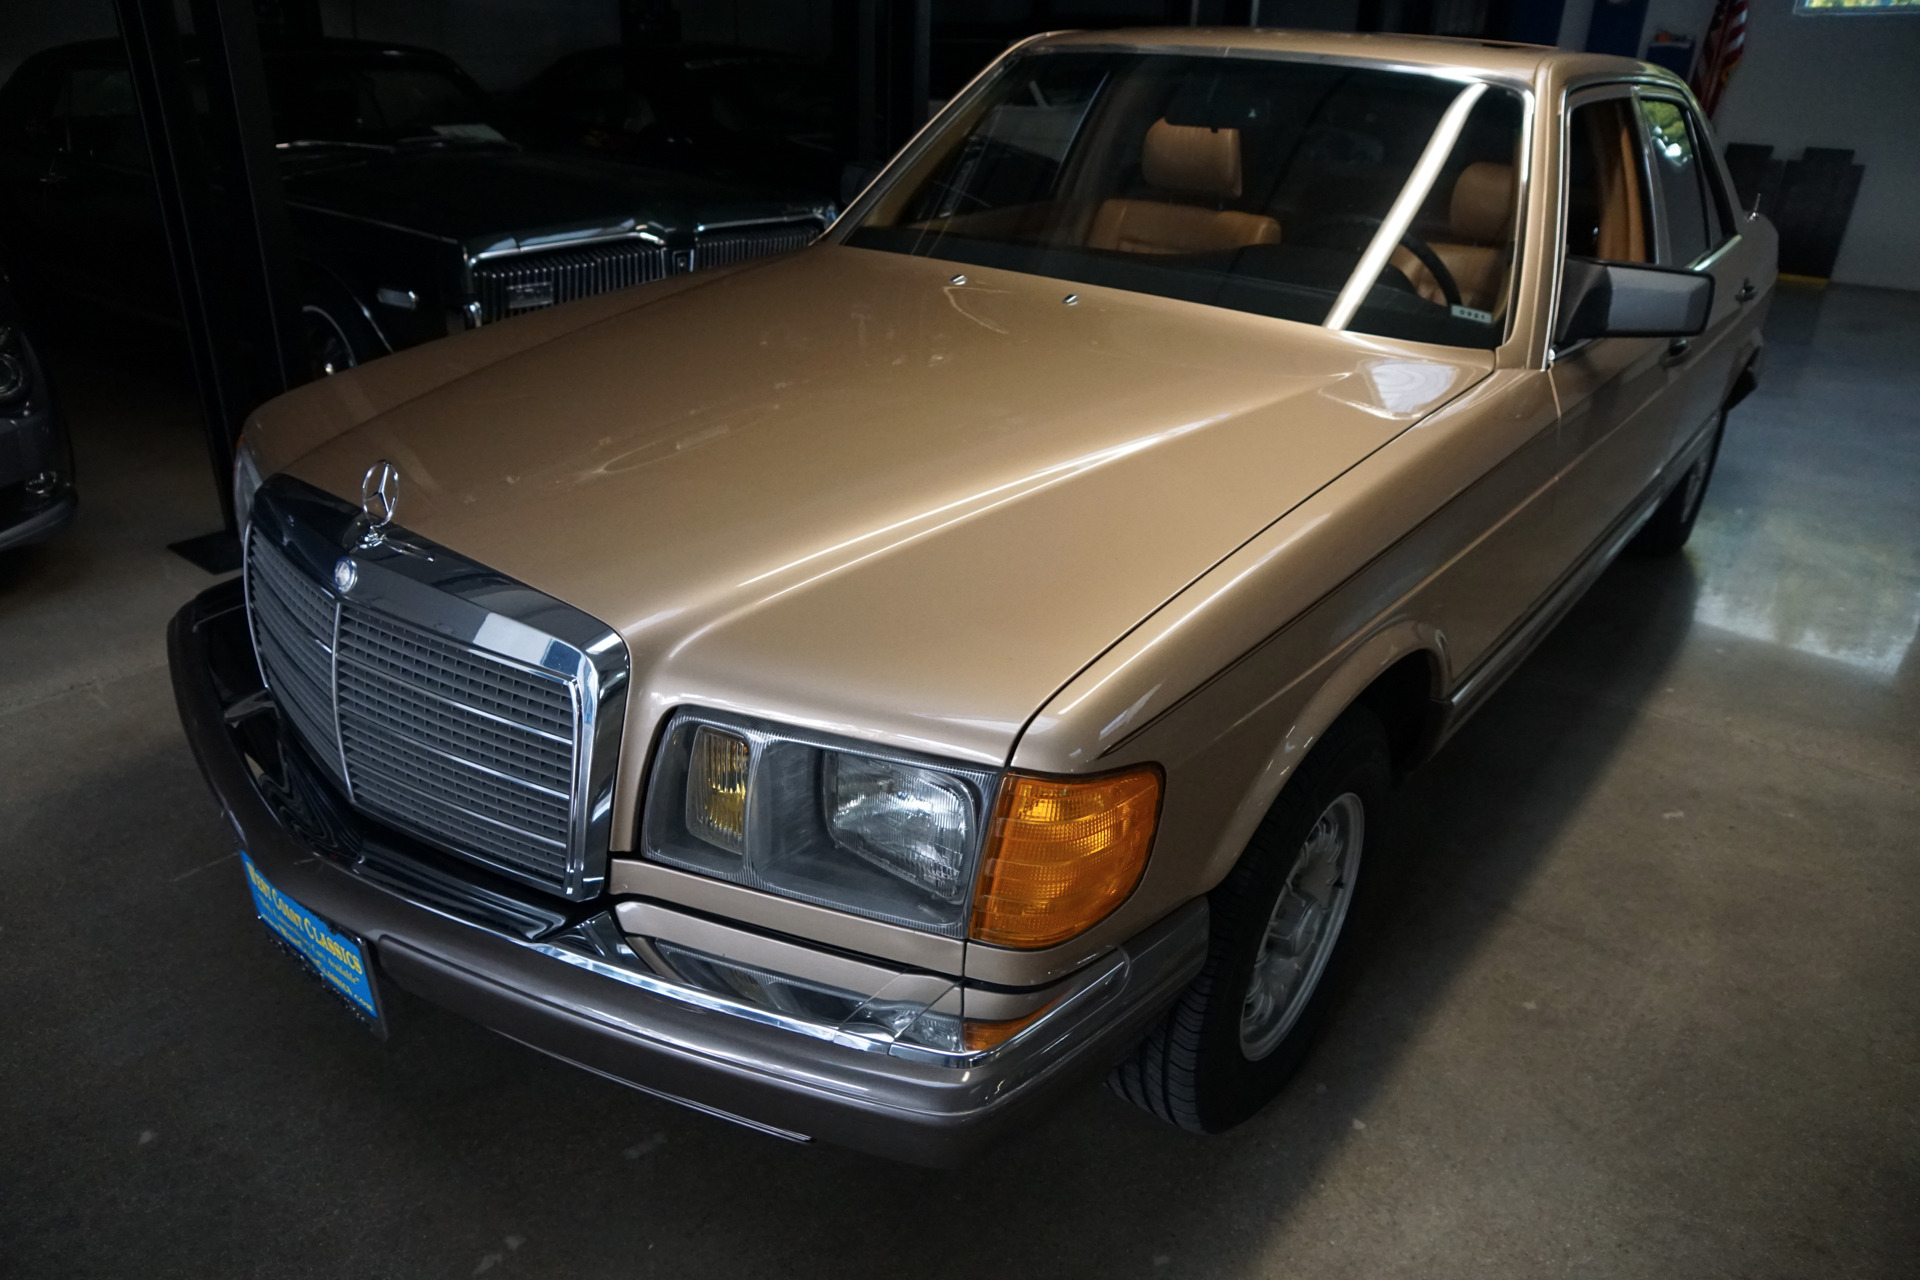 1983 mercedes benz 300 sd turbo diesel 300sd stock 688 for Mercedes benz 300 diesel